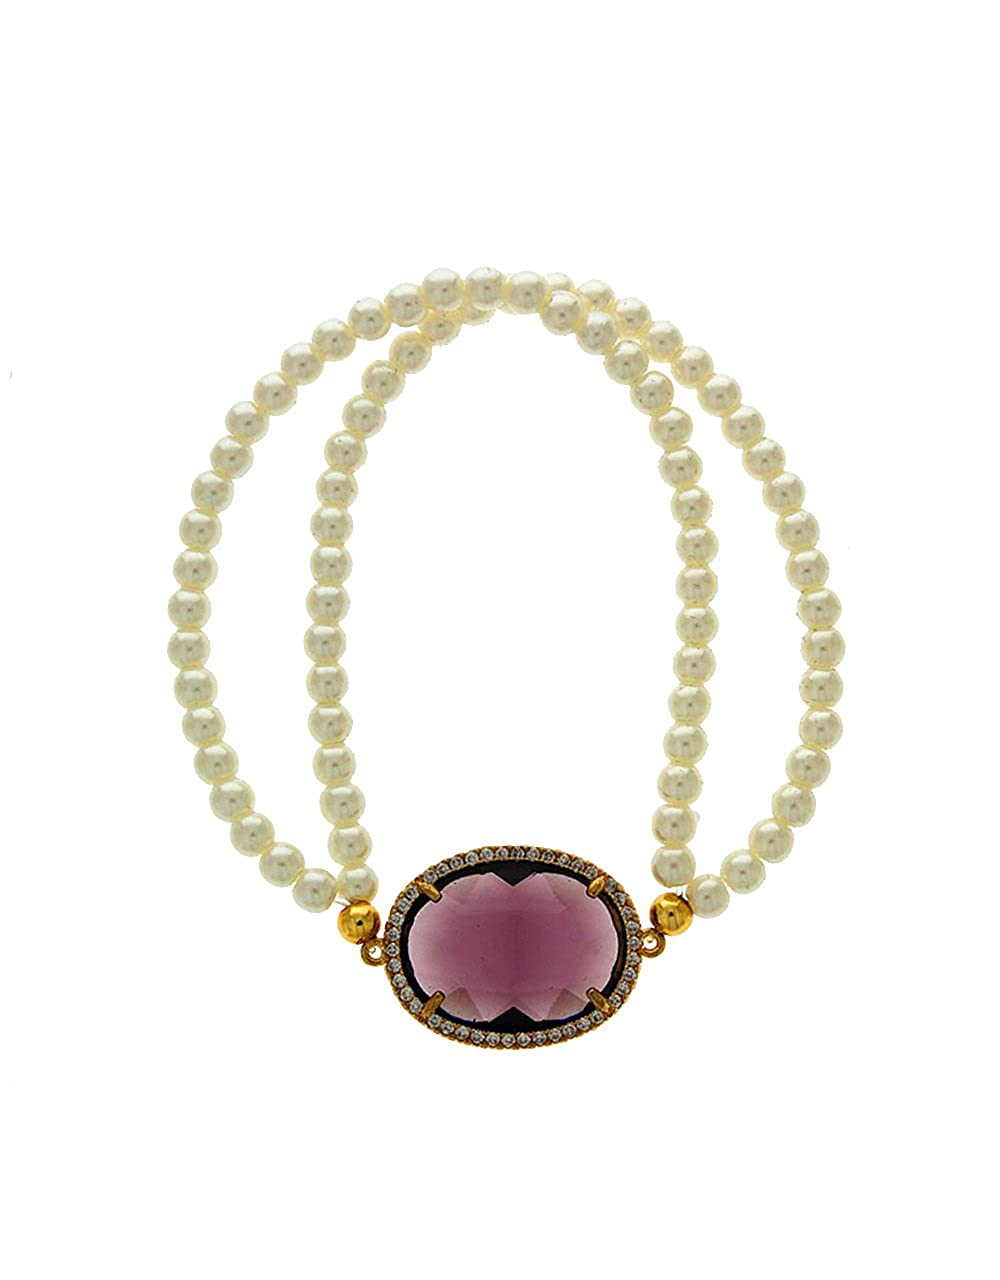 Anuradha Art Purple Colour Styled with Woven Pearl Beads Classy Hand Bracelet//Kada for Women//Girls